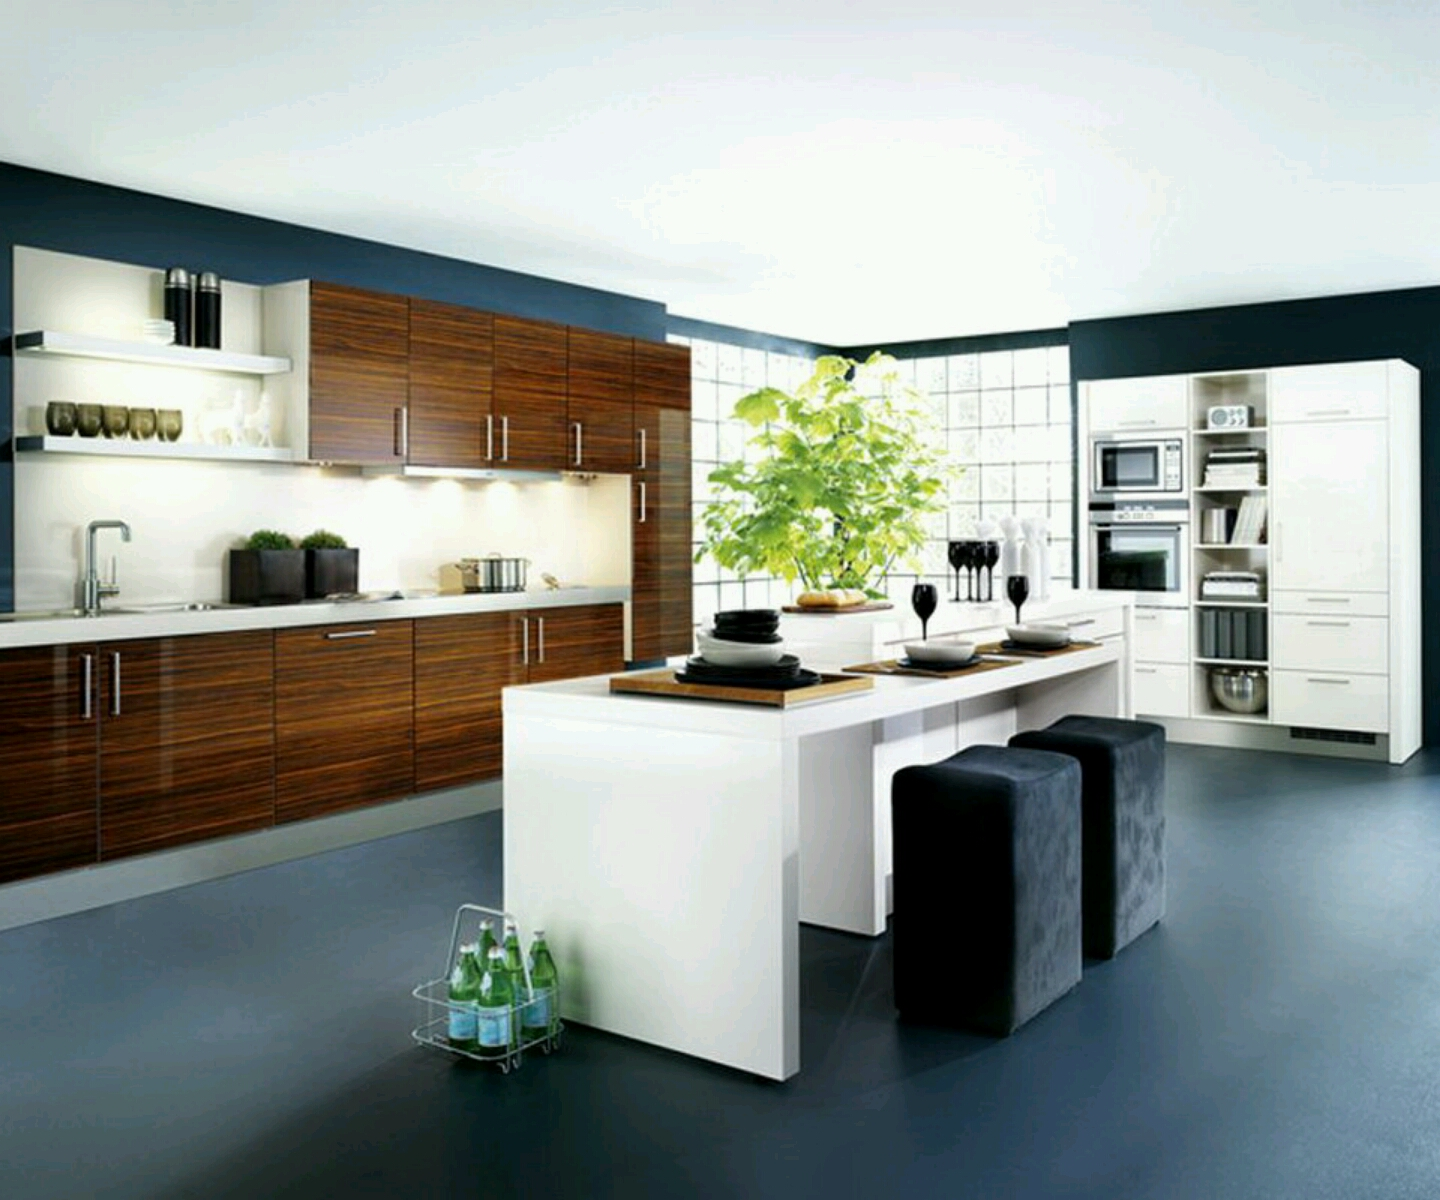 New home designs latest kitchen cabinets designs modern for Contemporary kitchen ideas